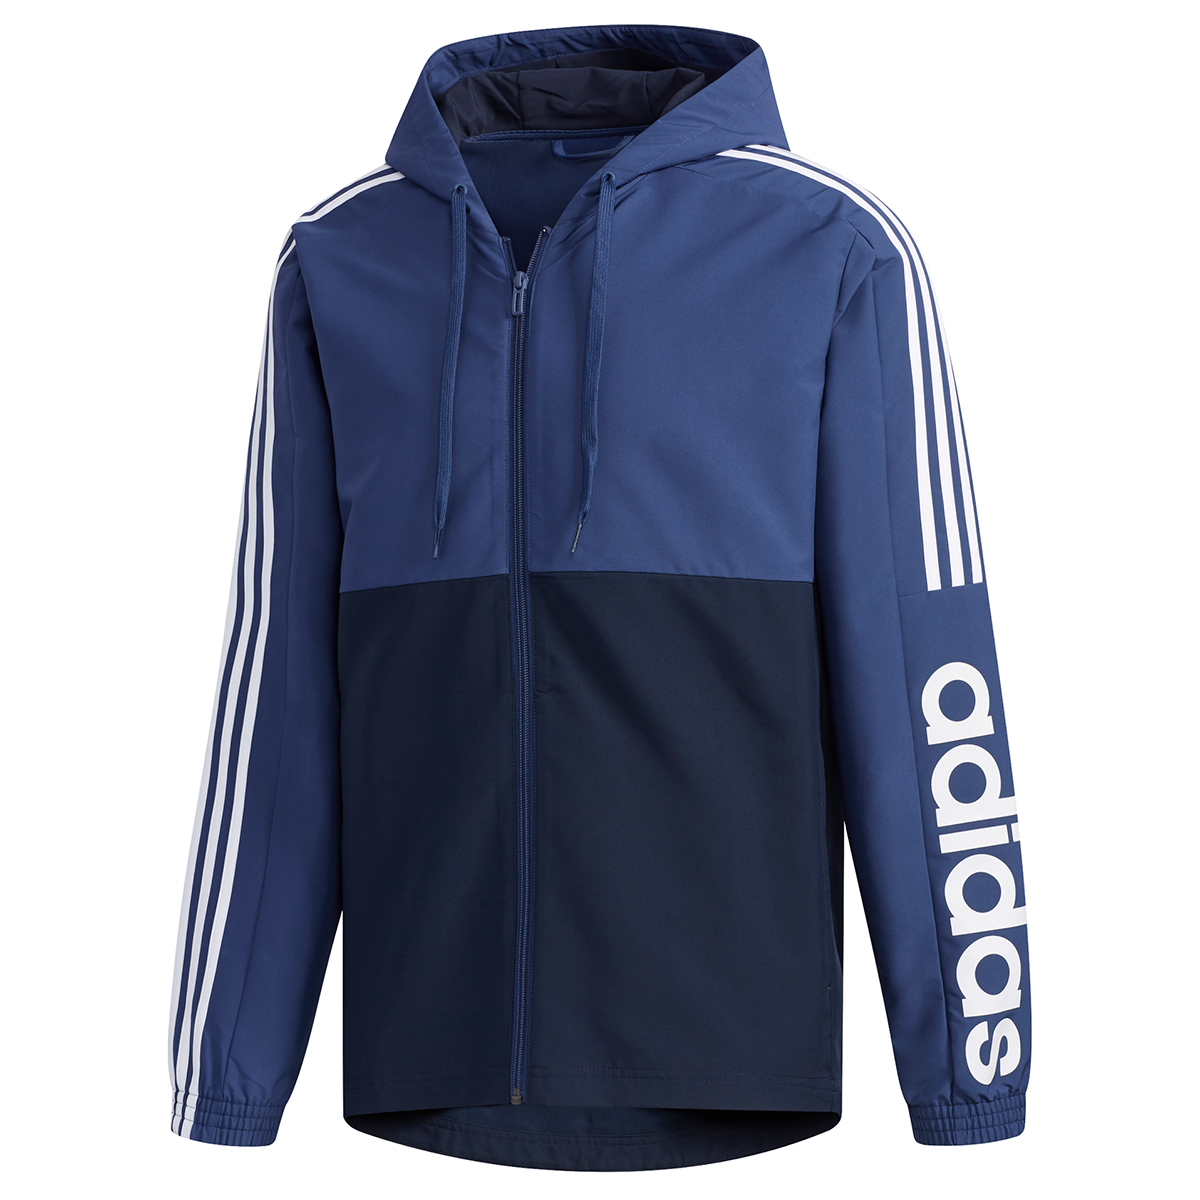 Adidas Men's Essential Colorblock Windbreaker Jacket - Blue, XL